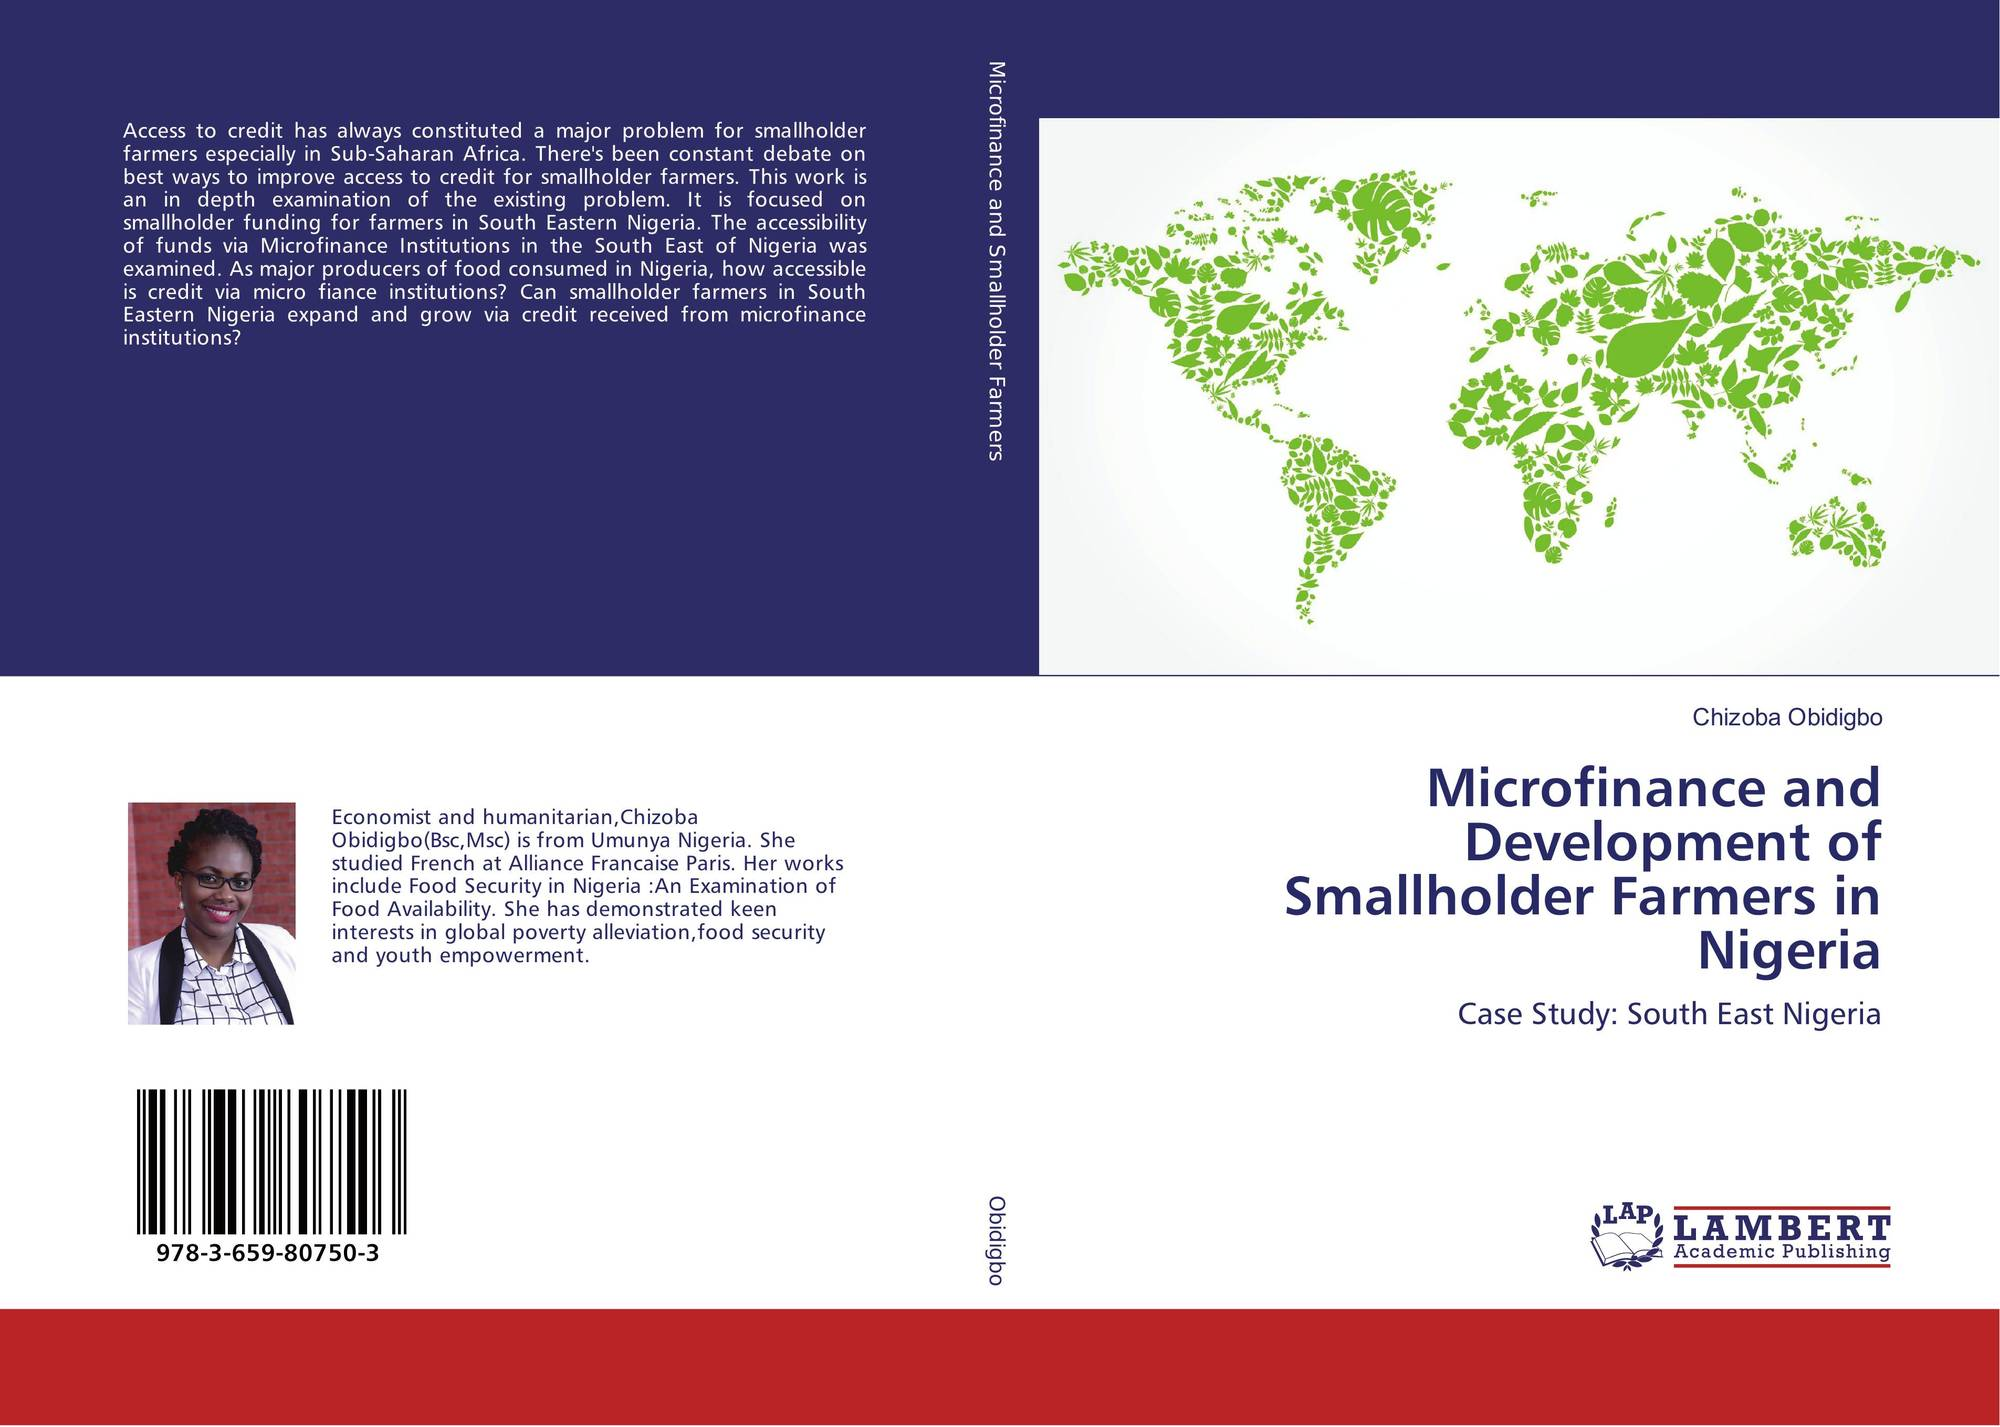 the evolution of microfinance institutions in nigeria economics essay In conclusion therefore, microfinance institutions have strong relationship with the development of rural areas in nigeria and the establishment of the institutions has positive effect on rural development and it has made it easy for the rural dwellers to.